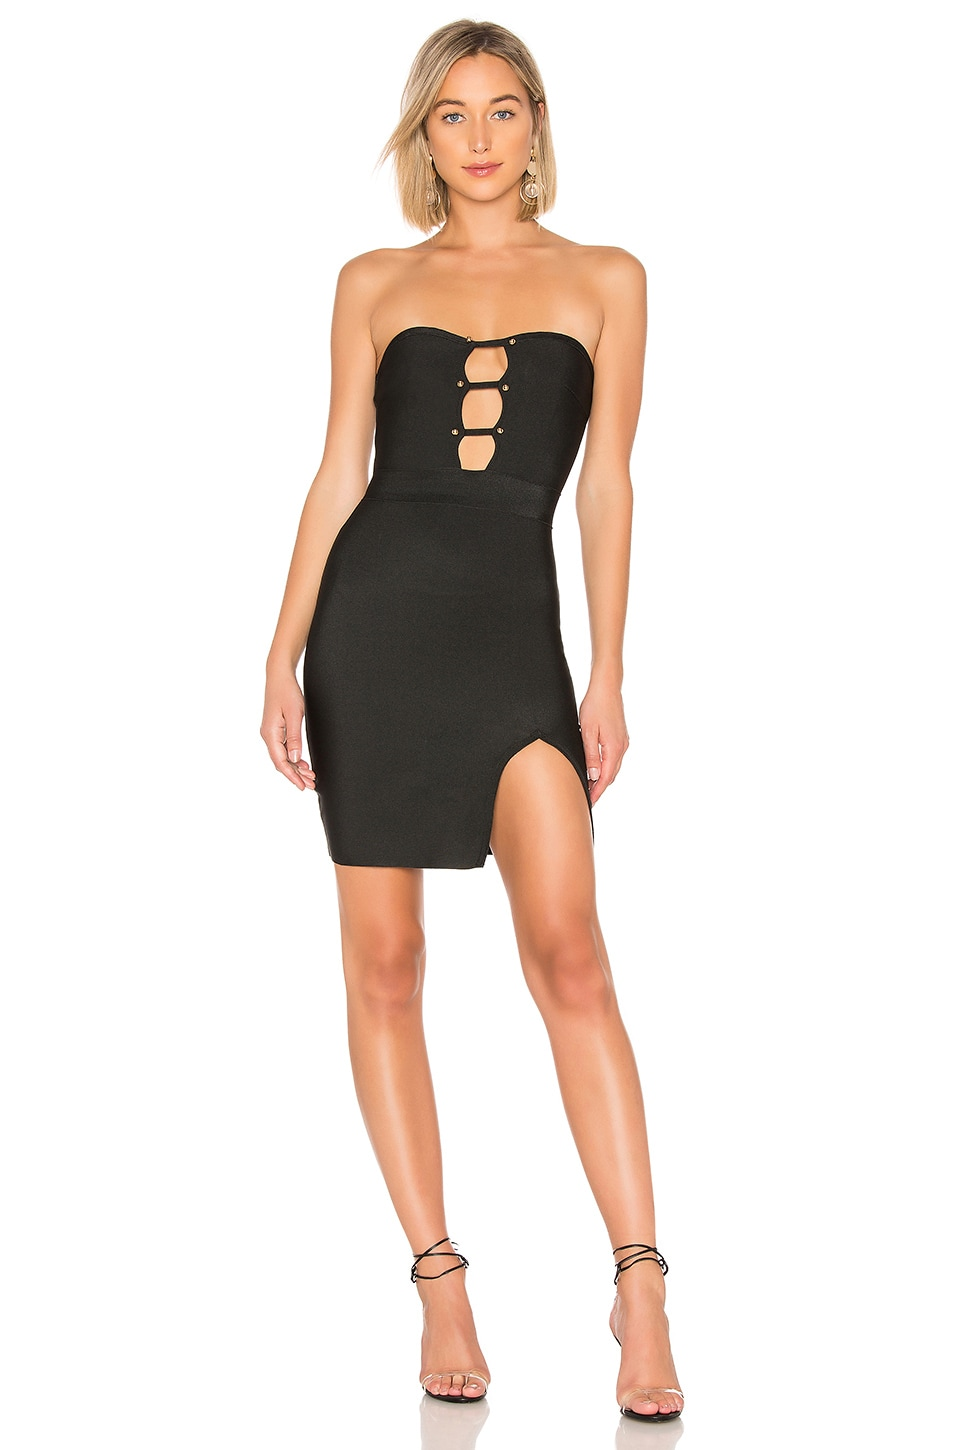 GIGI STUDDED BANDAGE DRESS